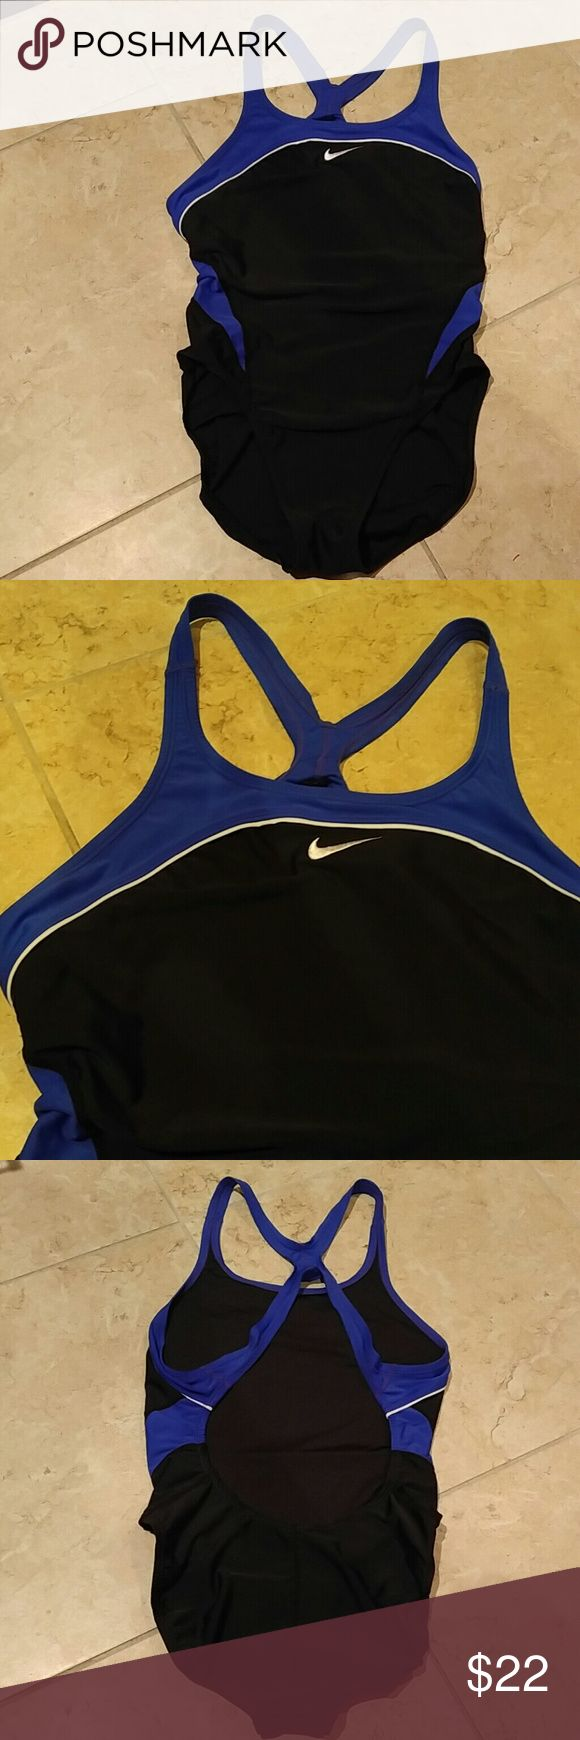 NIKE Swimsuit NIKE Black/Blue Swimsuit with sports Cut out Nike Swim One Pieces